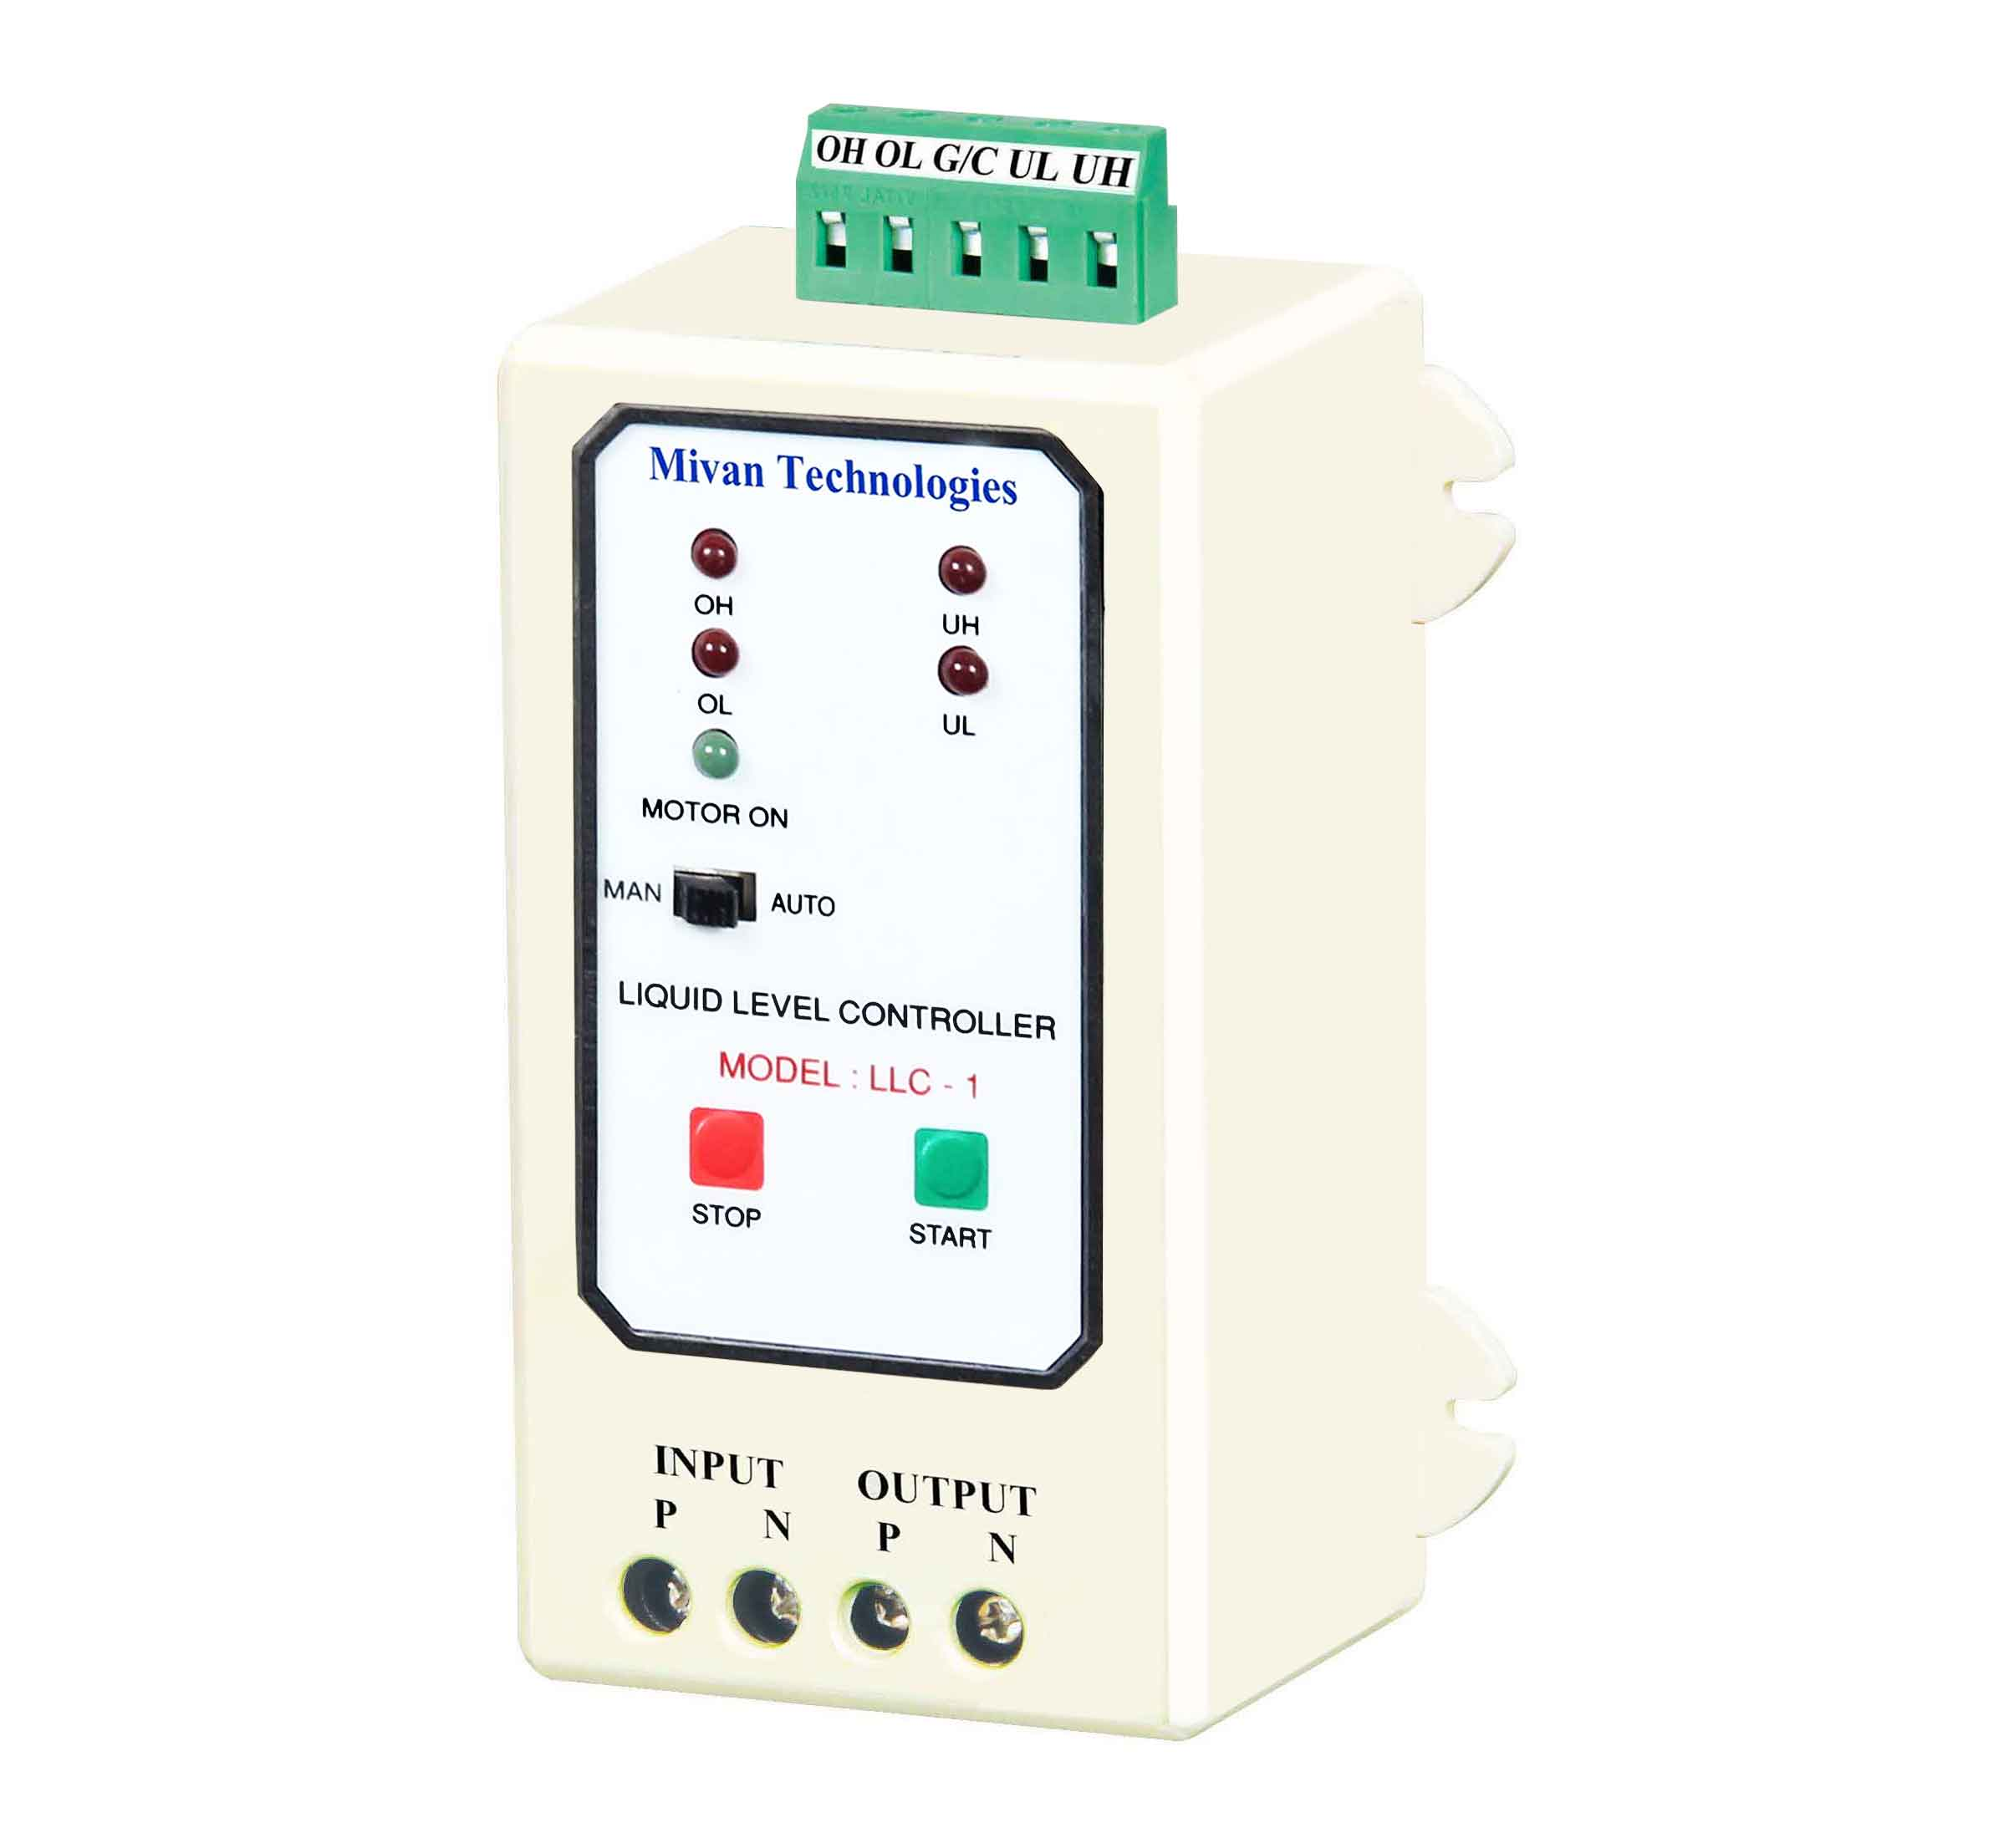 LLC 1 ABS Fully Automatic Water Level Controller and Indicators For Up and Down Tank With 6 Sensors Suitable For Motor Up to 5Hp Supply 230 VAC